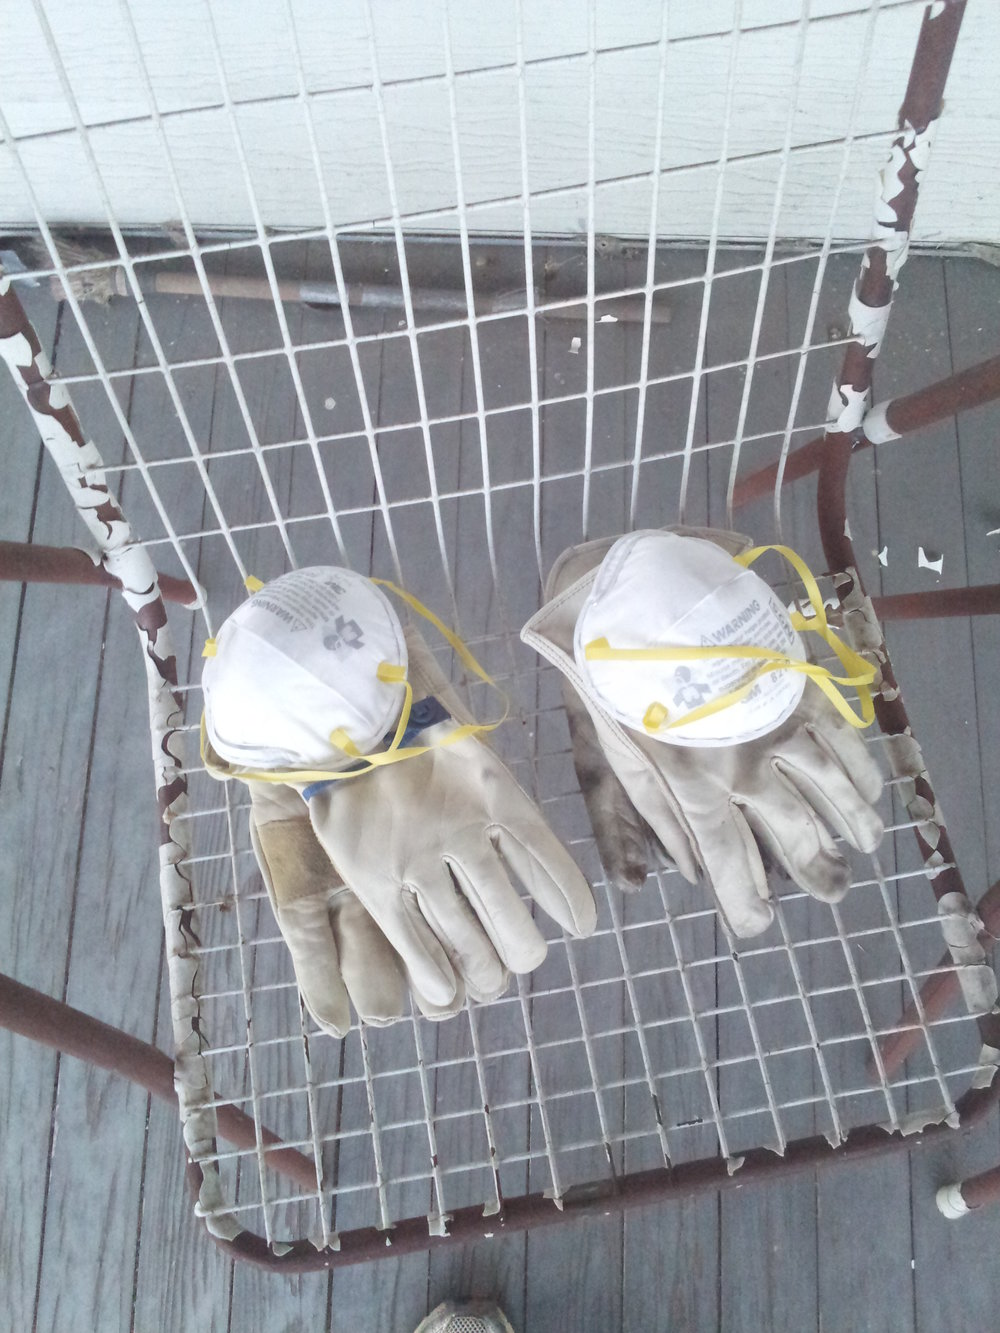 His and hers work gloves